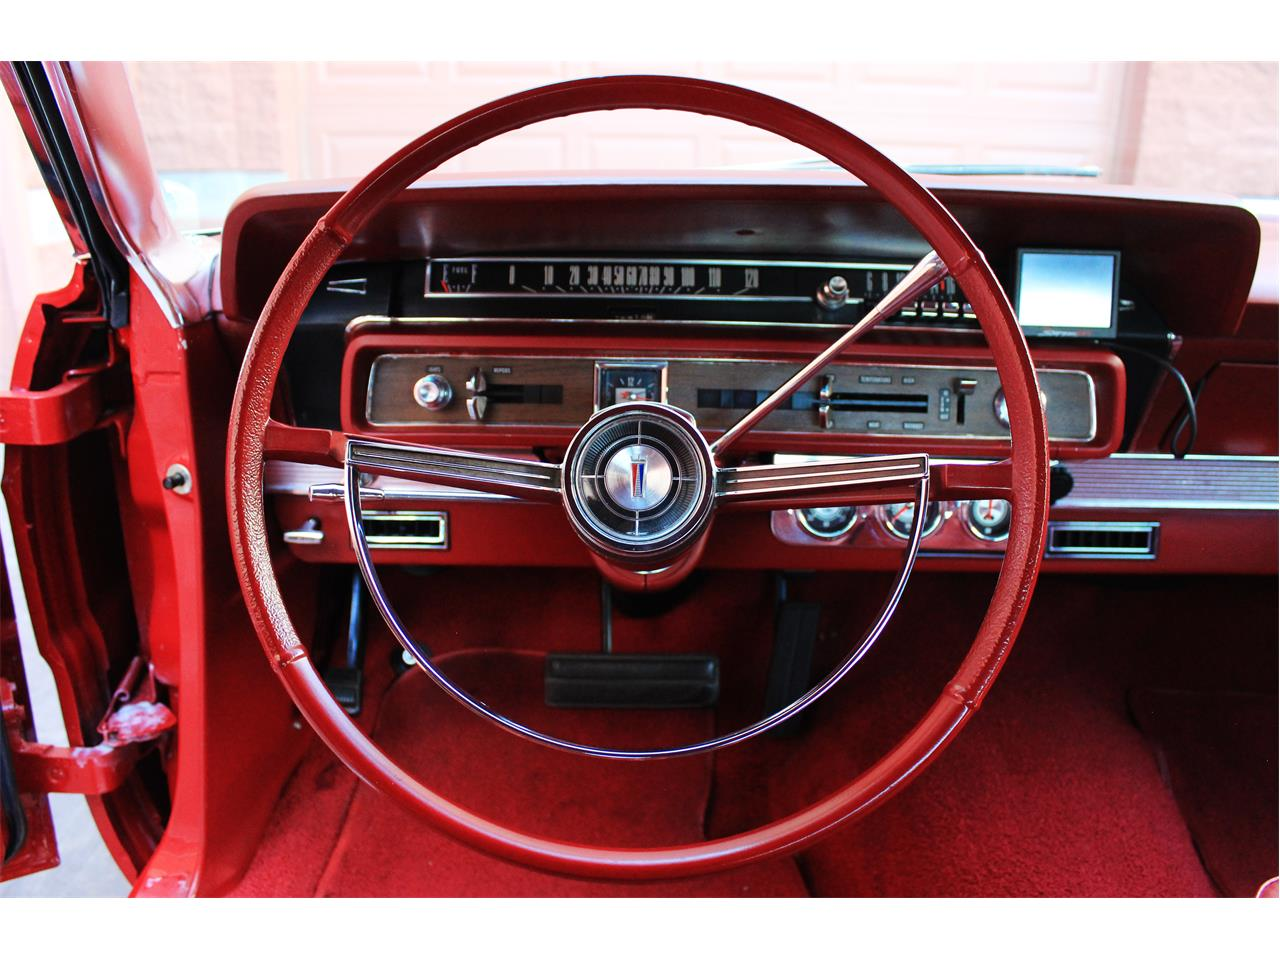 1966 Ford Galaxie 500 for sale in Scottsdale, AZ – photo 8